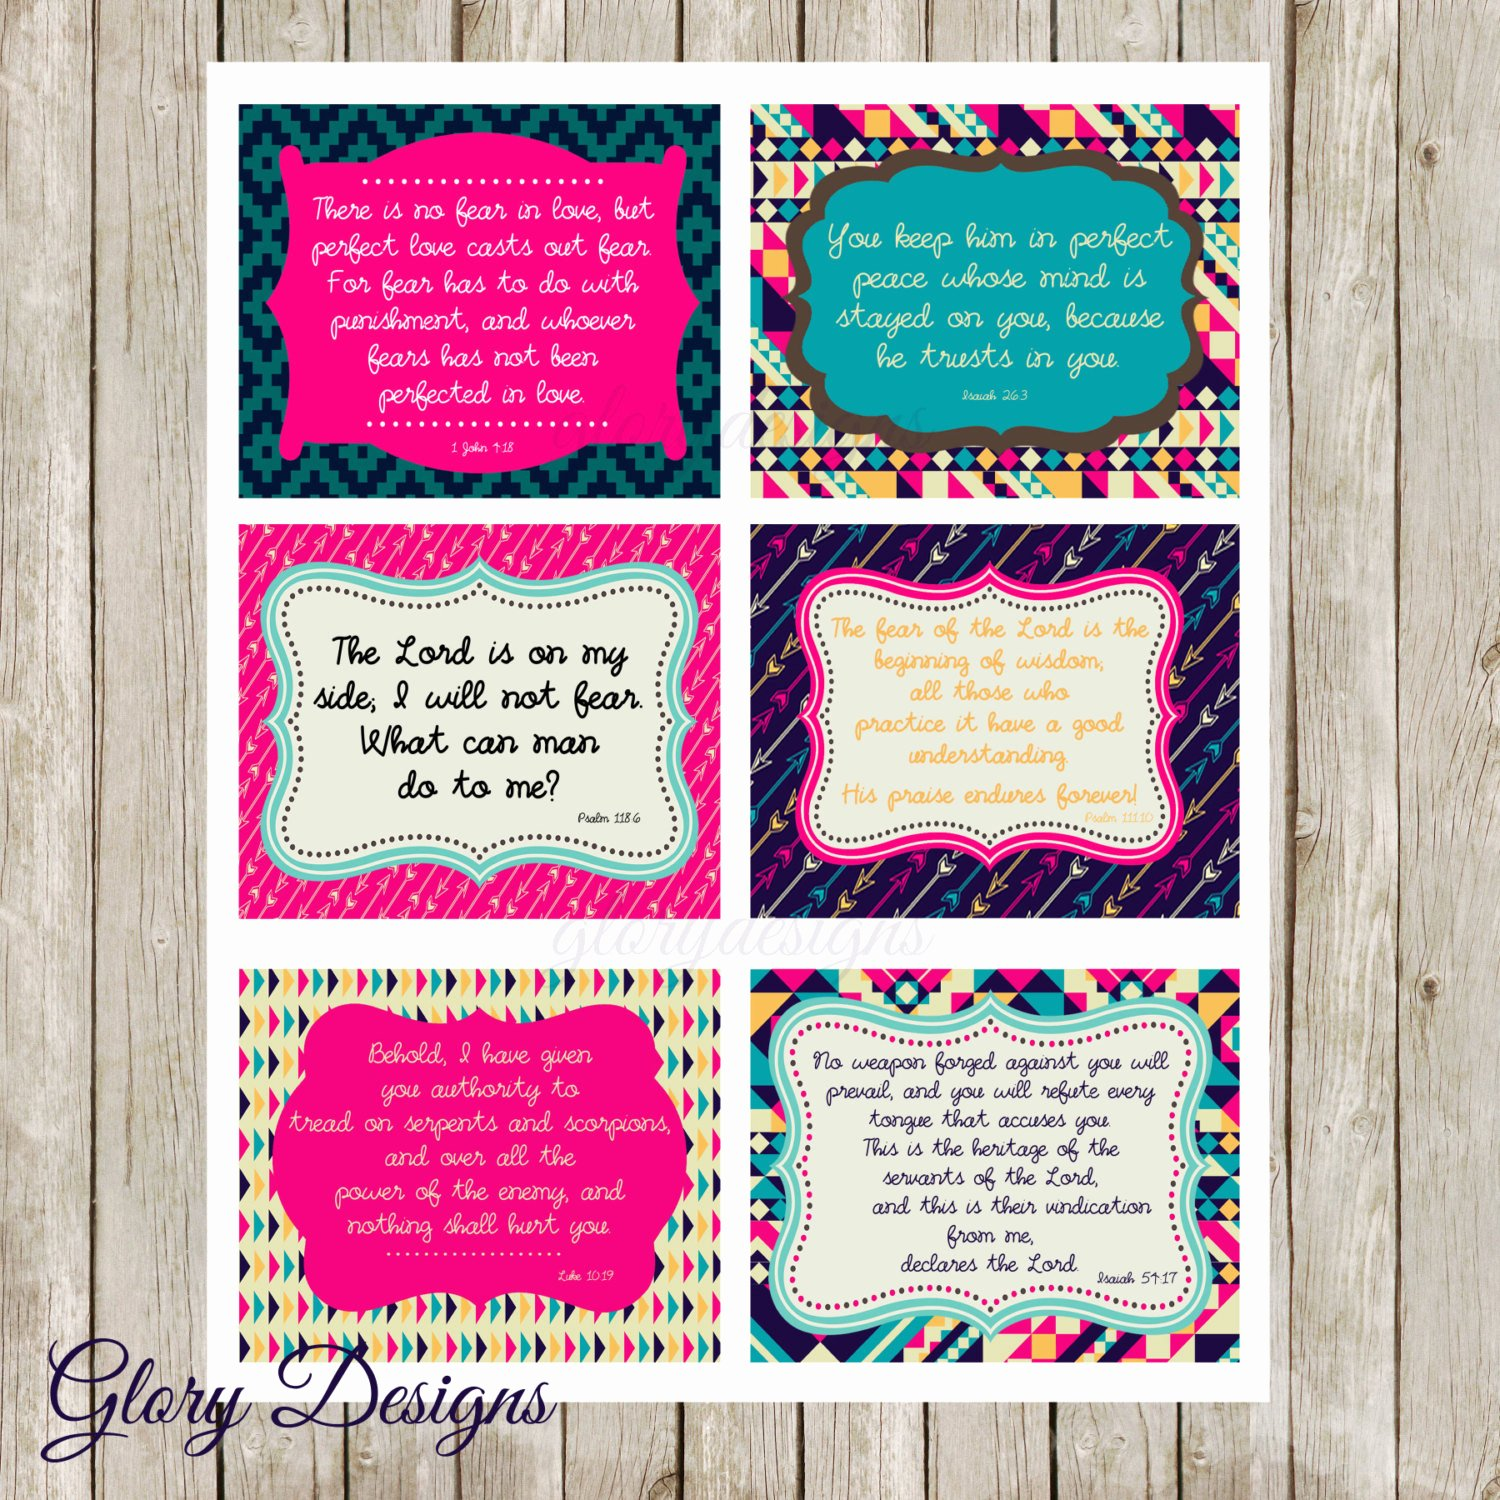 Prayer Request Cards Free Printables Luxury Prayer Cards Prayer Scripture Cards Diy Printable Cards